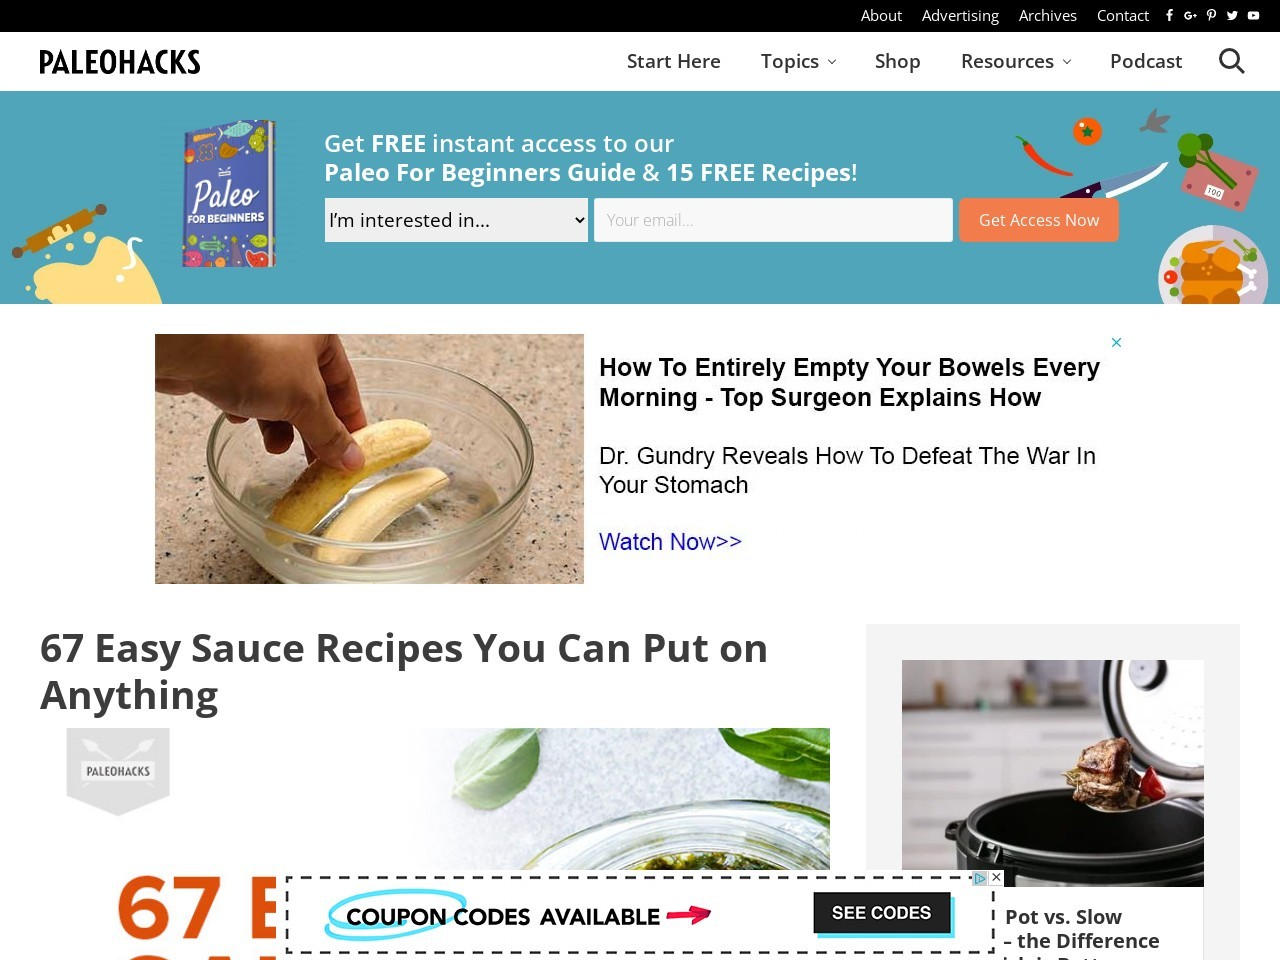 67 Easy Sauce Recipes You Can Put on Anything